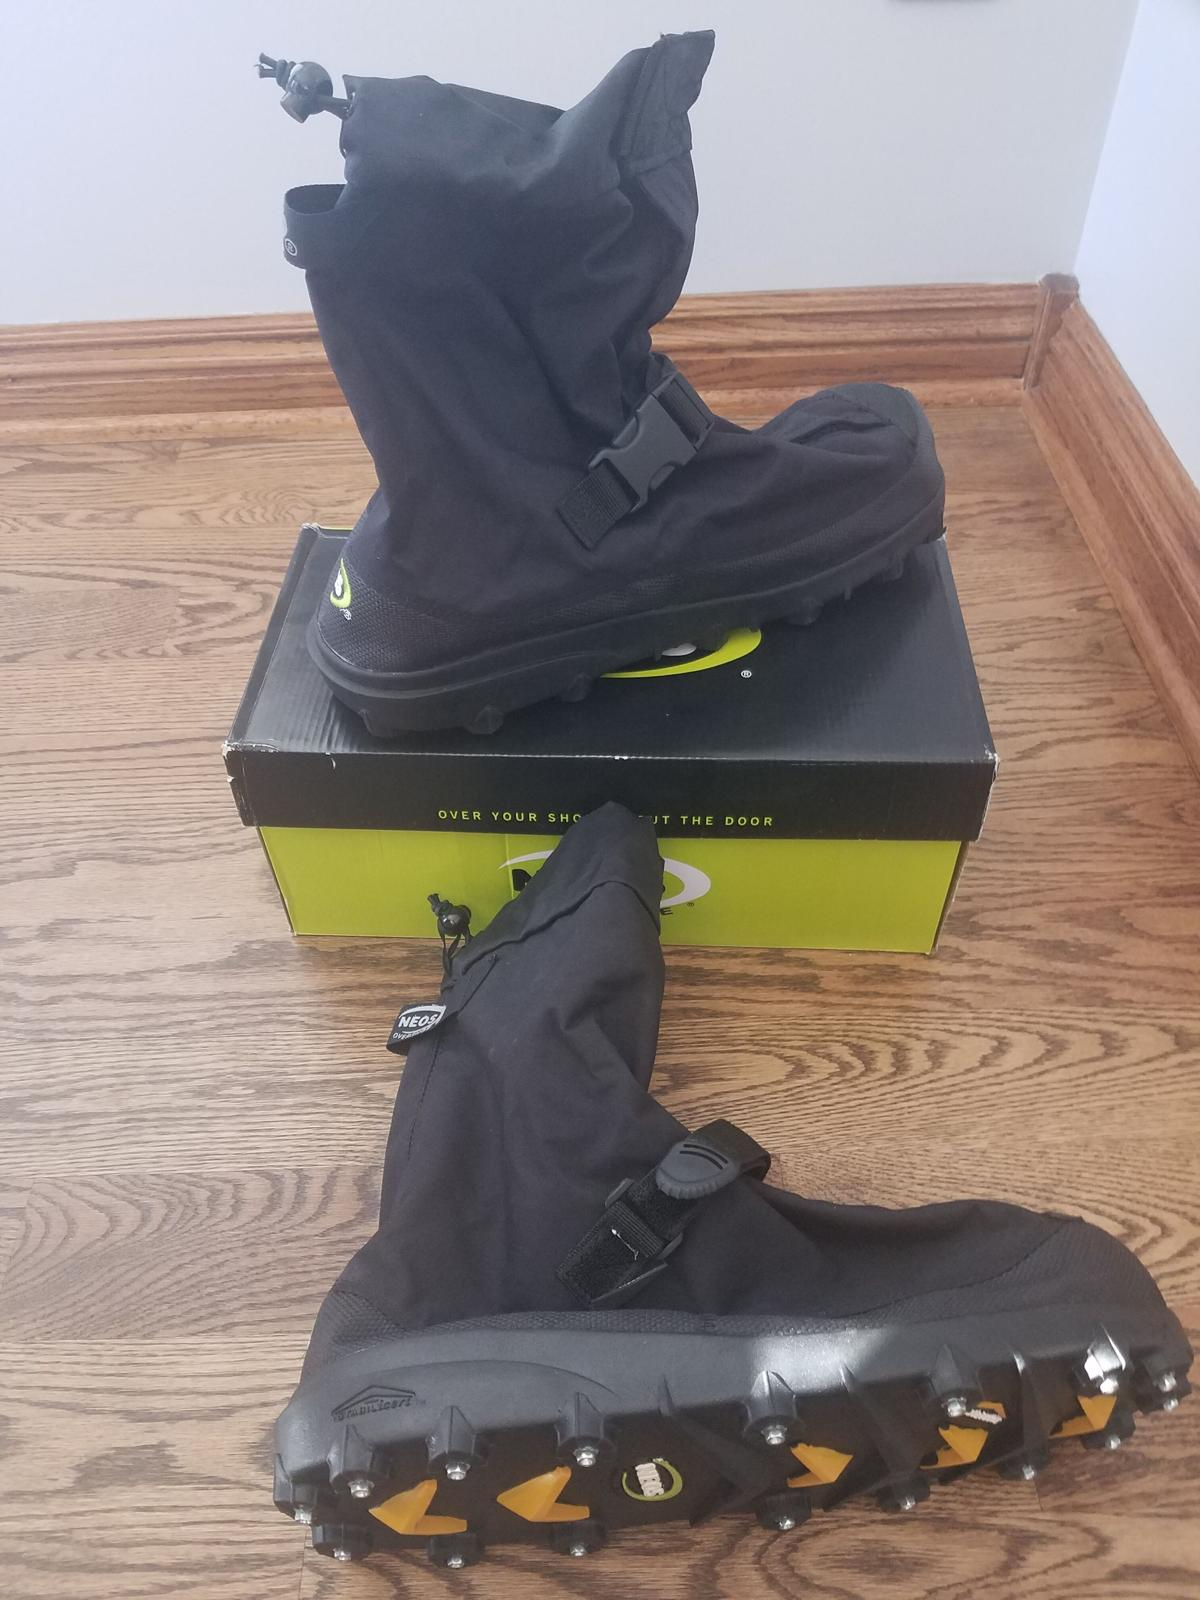 Men's over boots-$40.00 OBO image 1